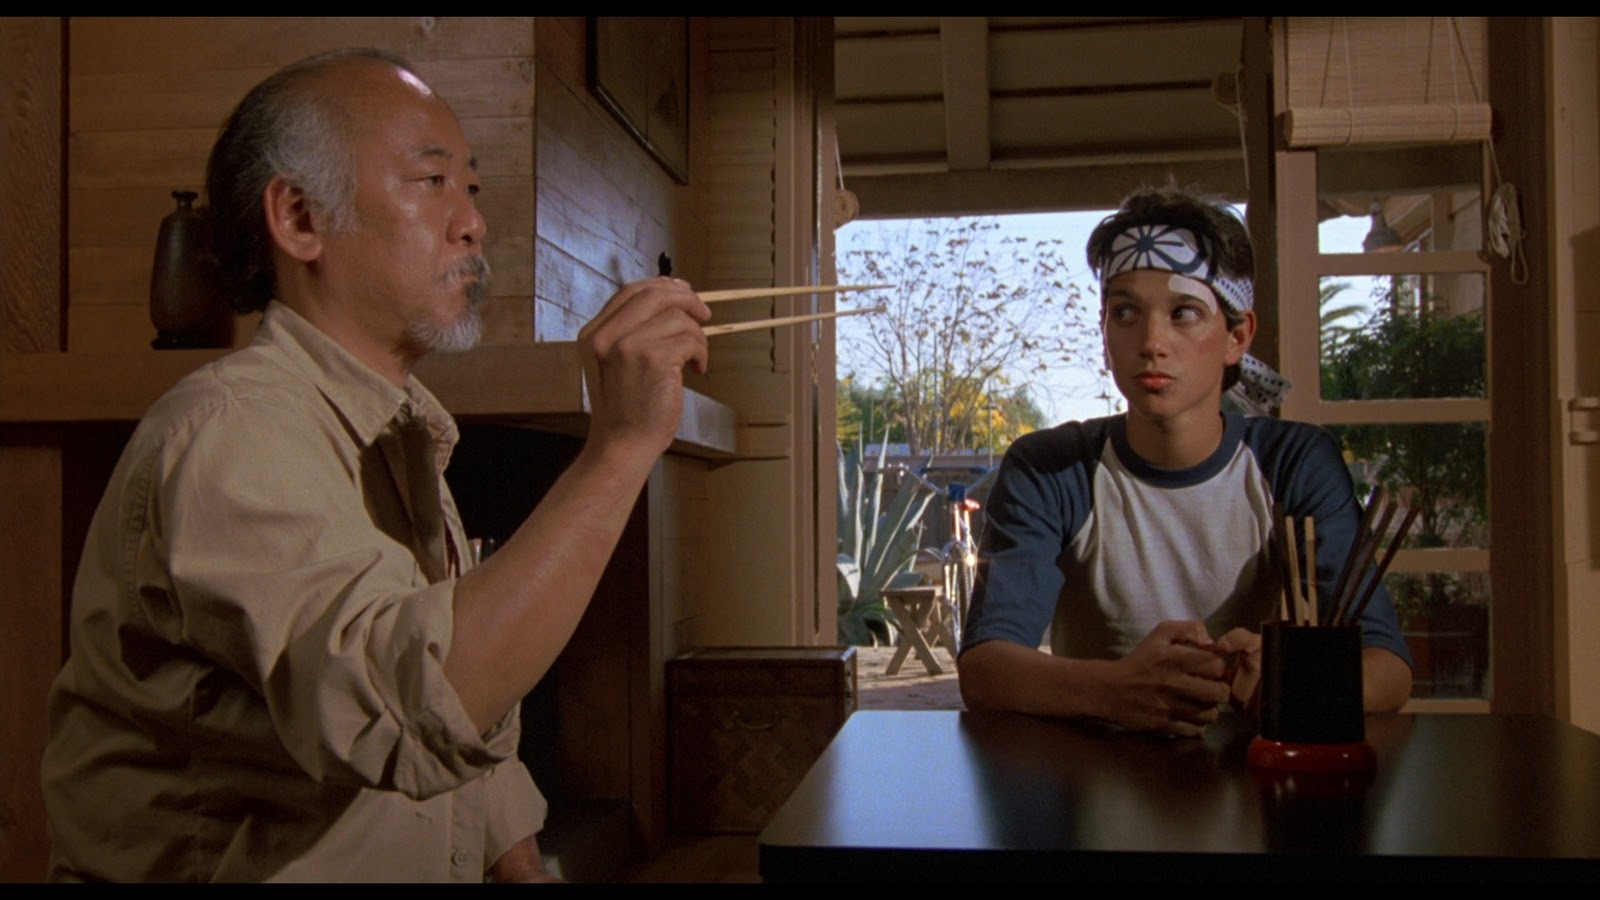 FILM MUSIC: The Karate Kid (1984) - Bill Conti